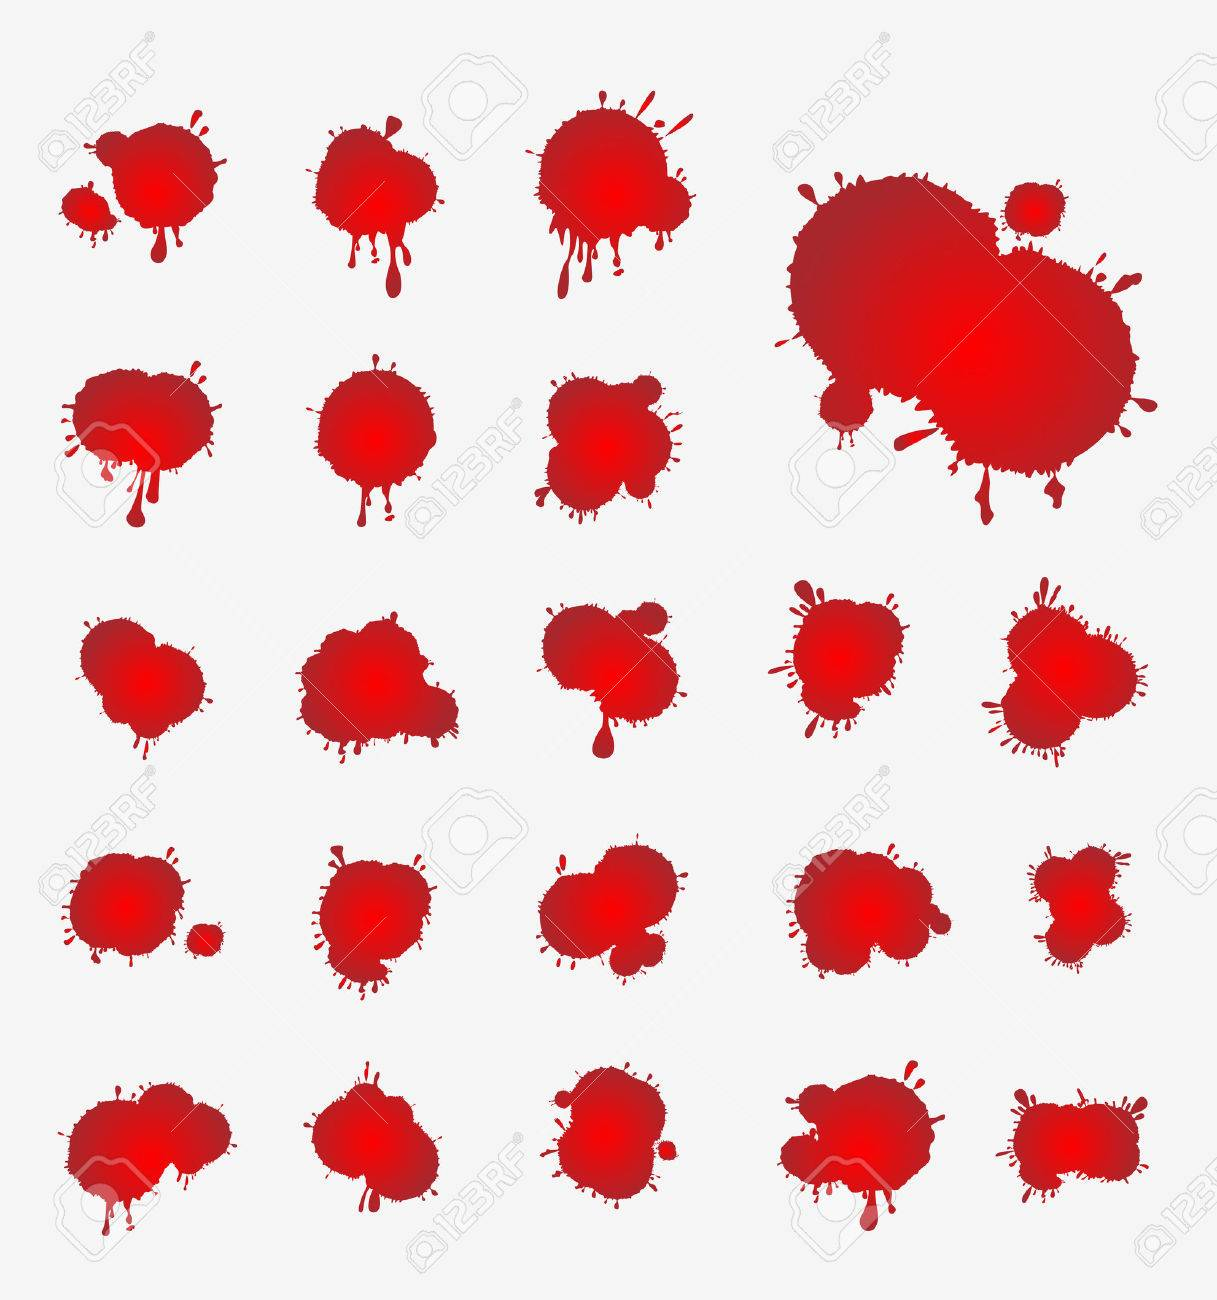 vector set of blood stains - 33472499